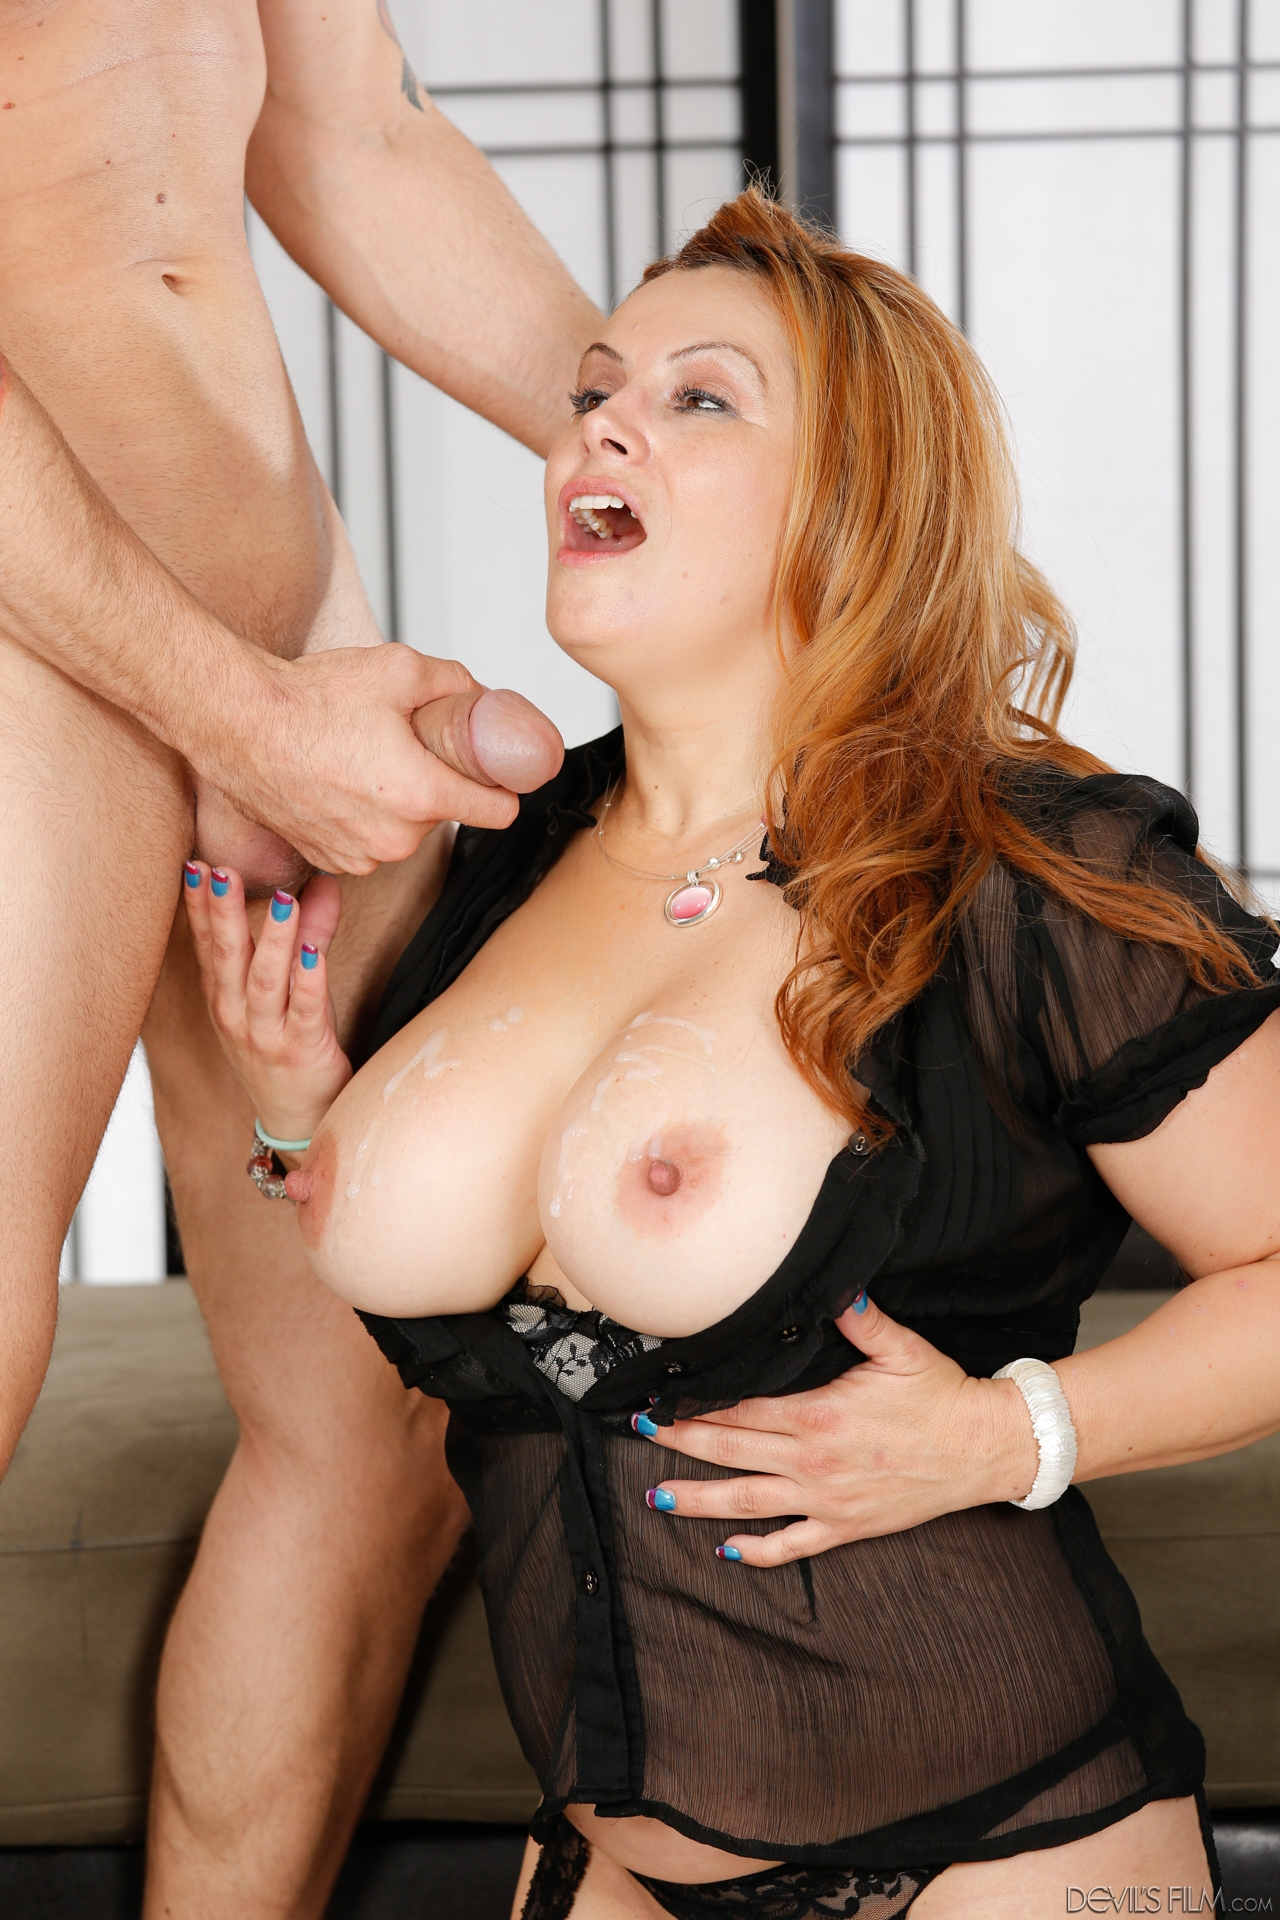 Mature women and grannies. Gallery - 1264. Photo - 14